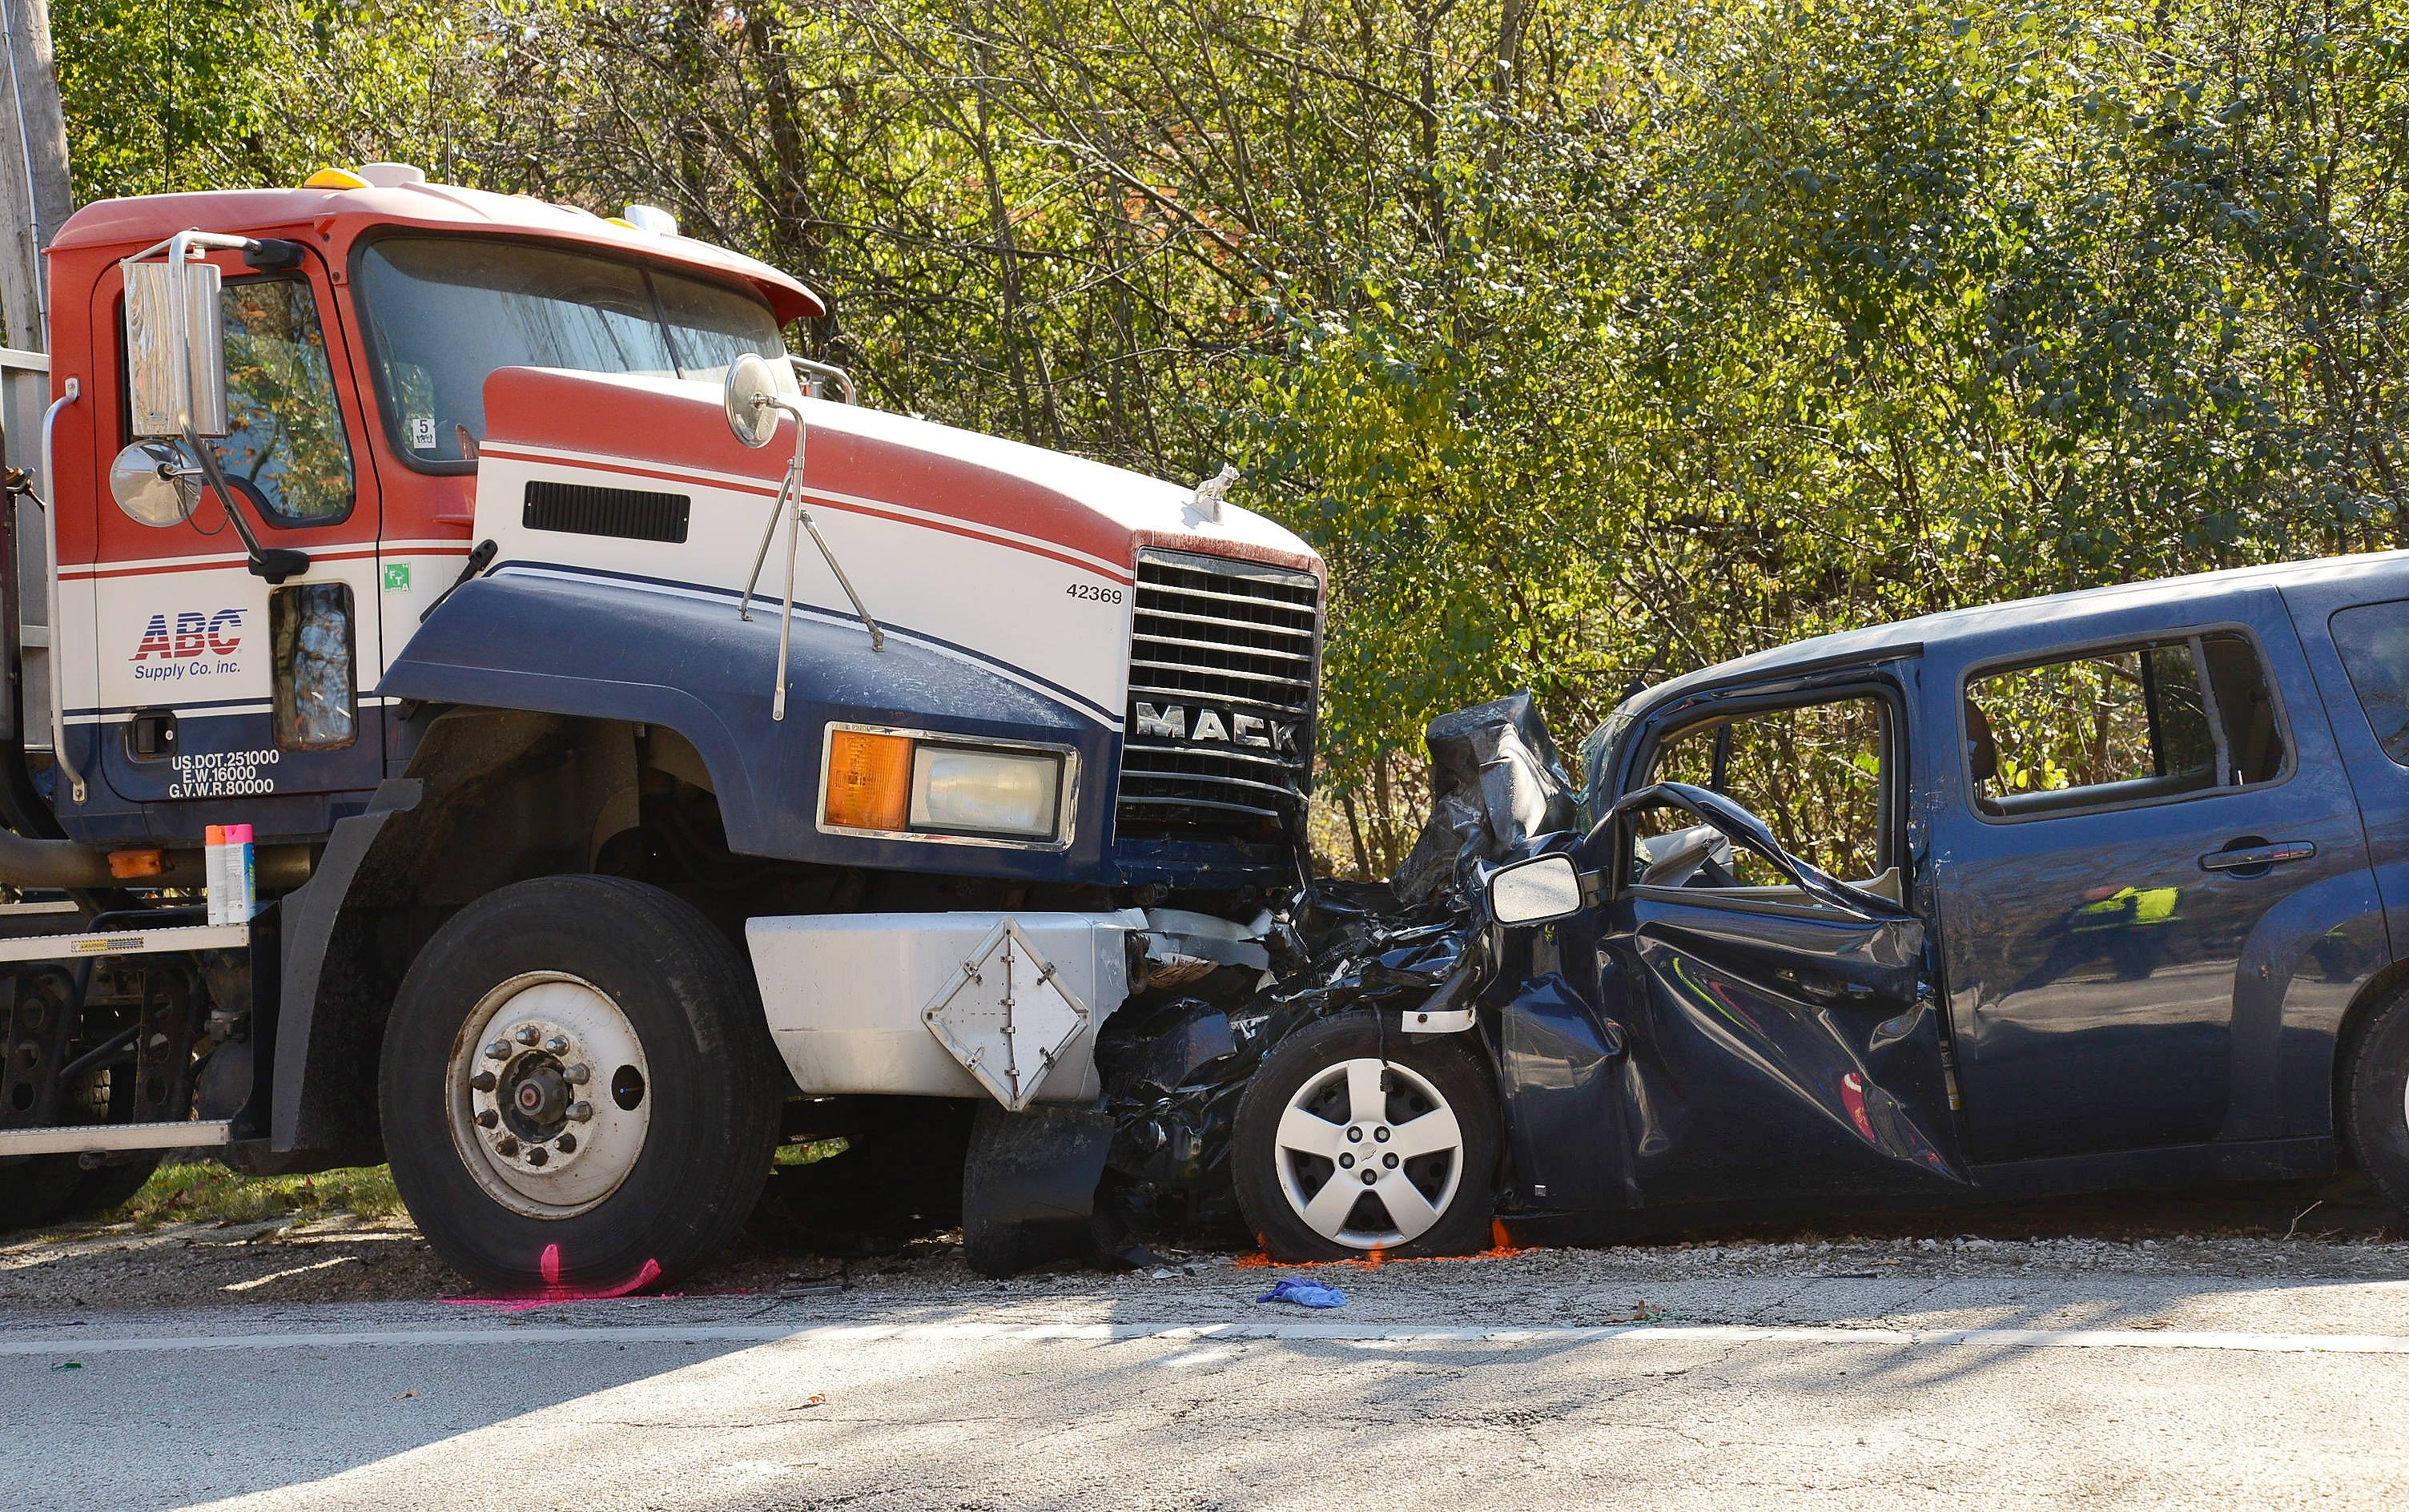 A Long Grove man died Wednesday after running into a parked semitrailer truck on Old McHenry Road in Long Grove.